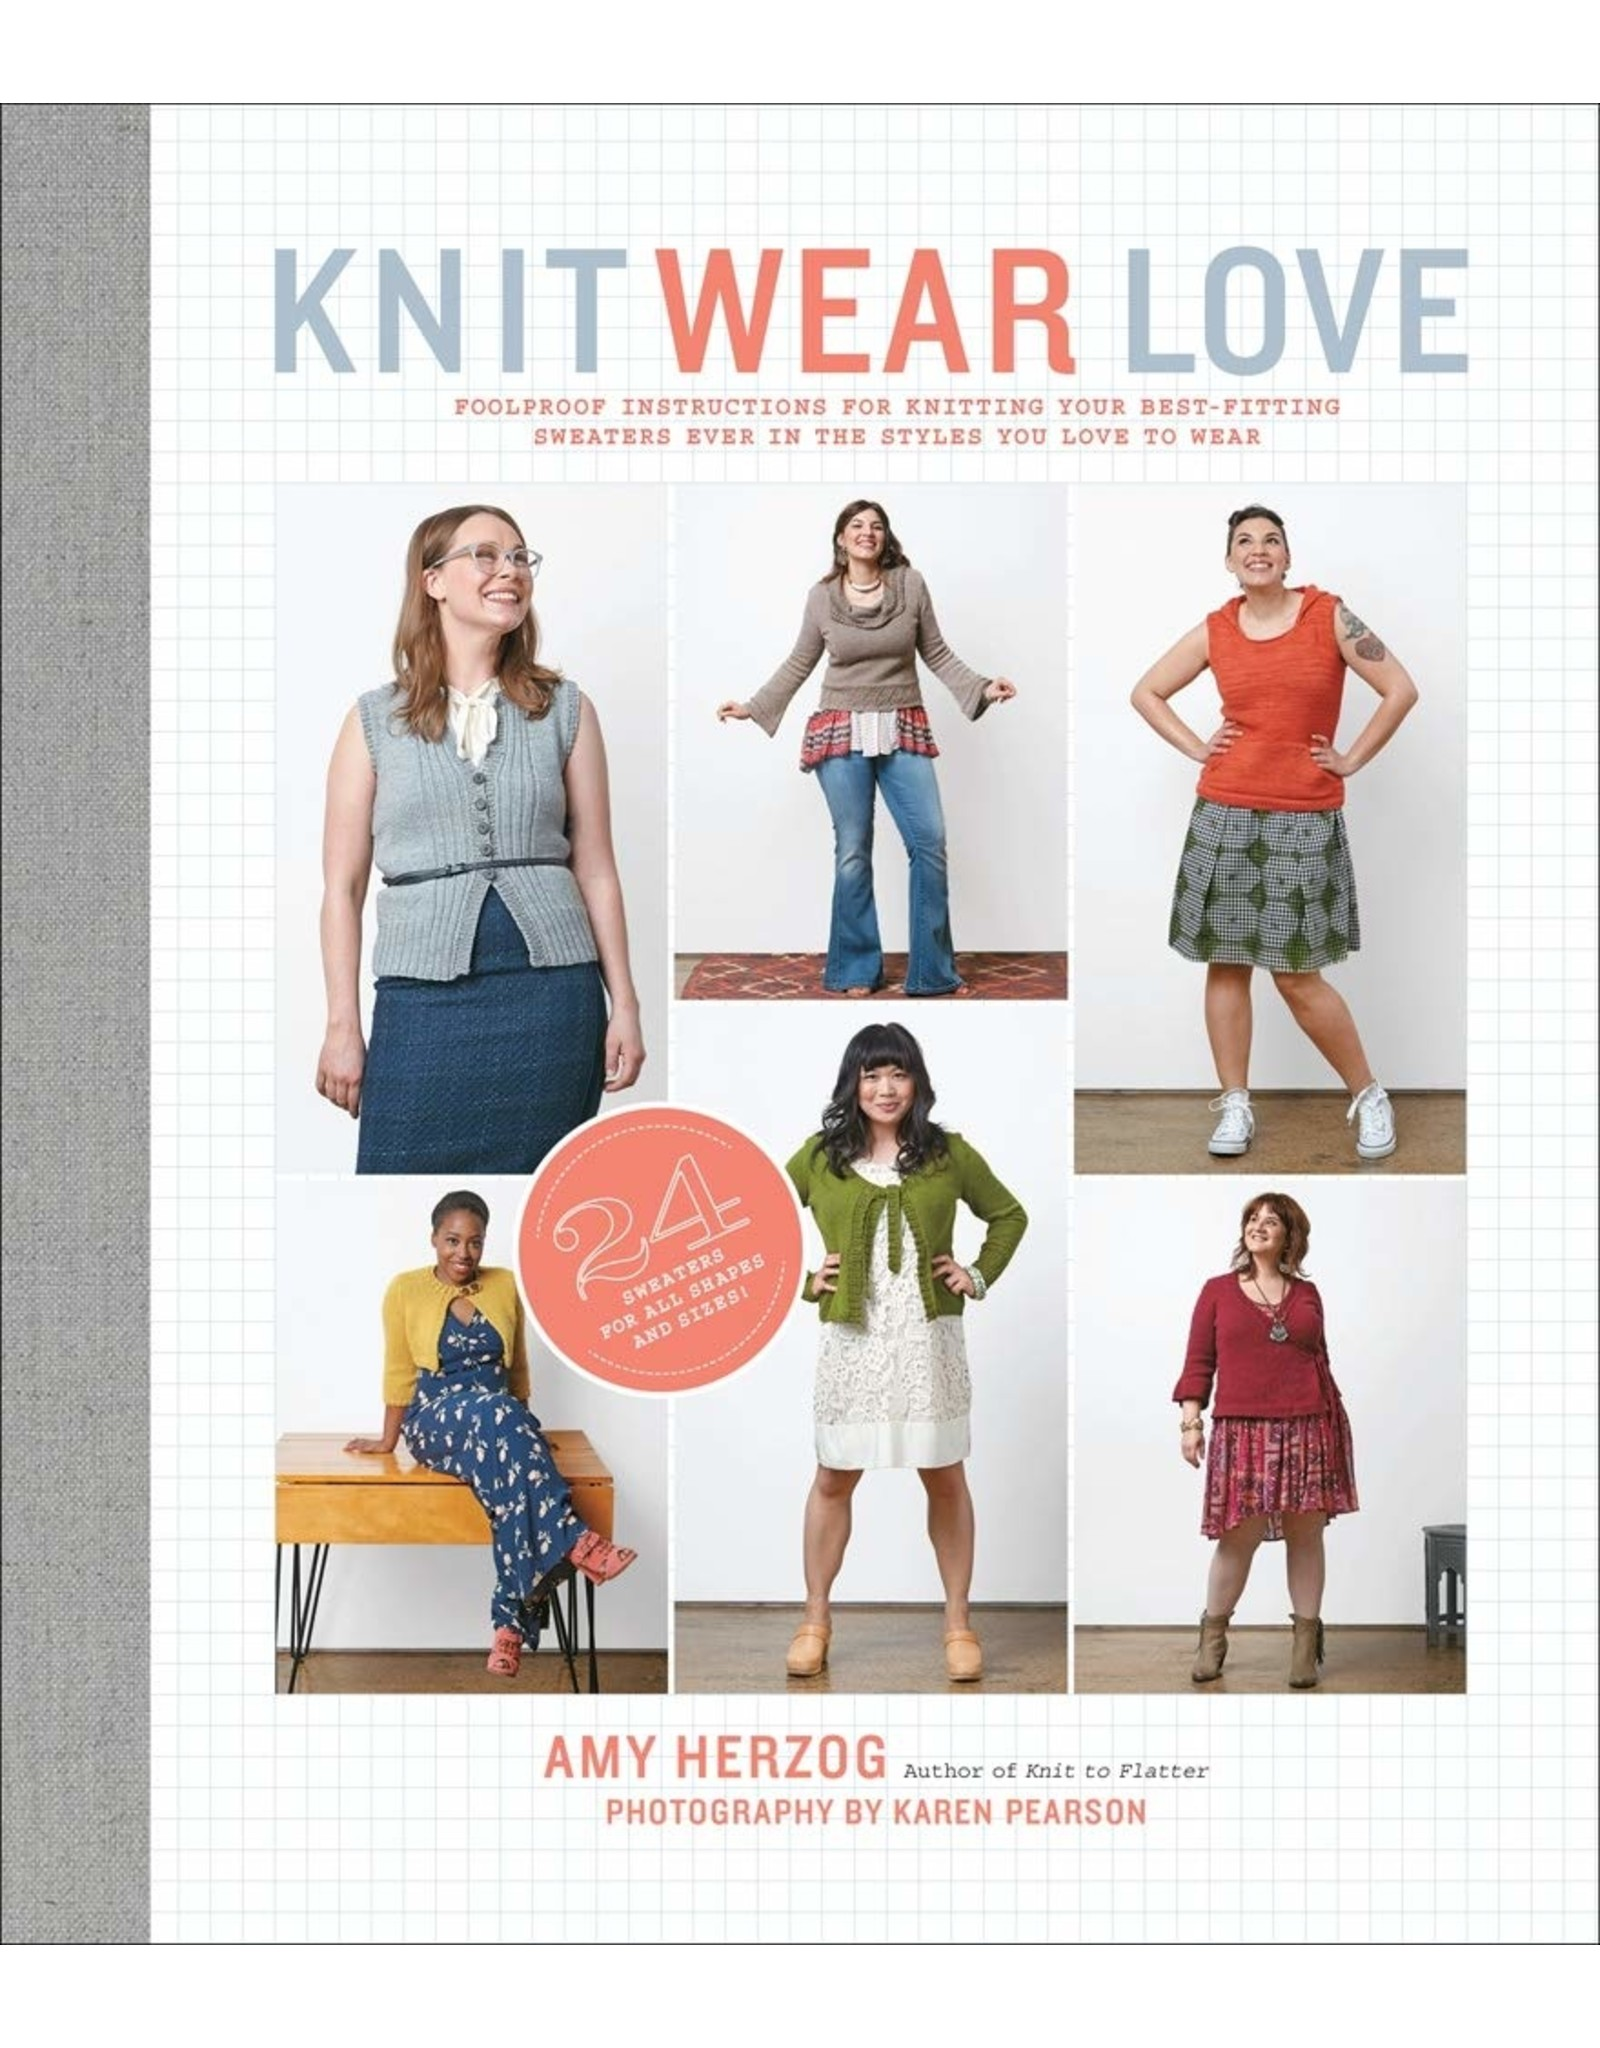 Knit Wear Love - Amy Herzog - Knitting Sweaters Guide